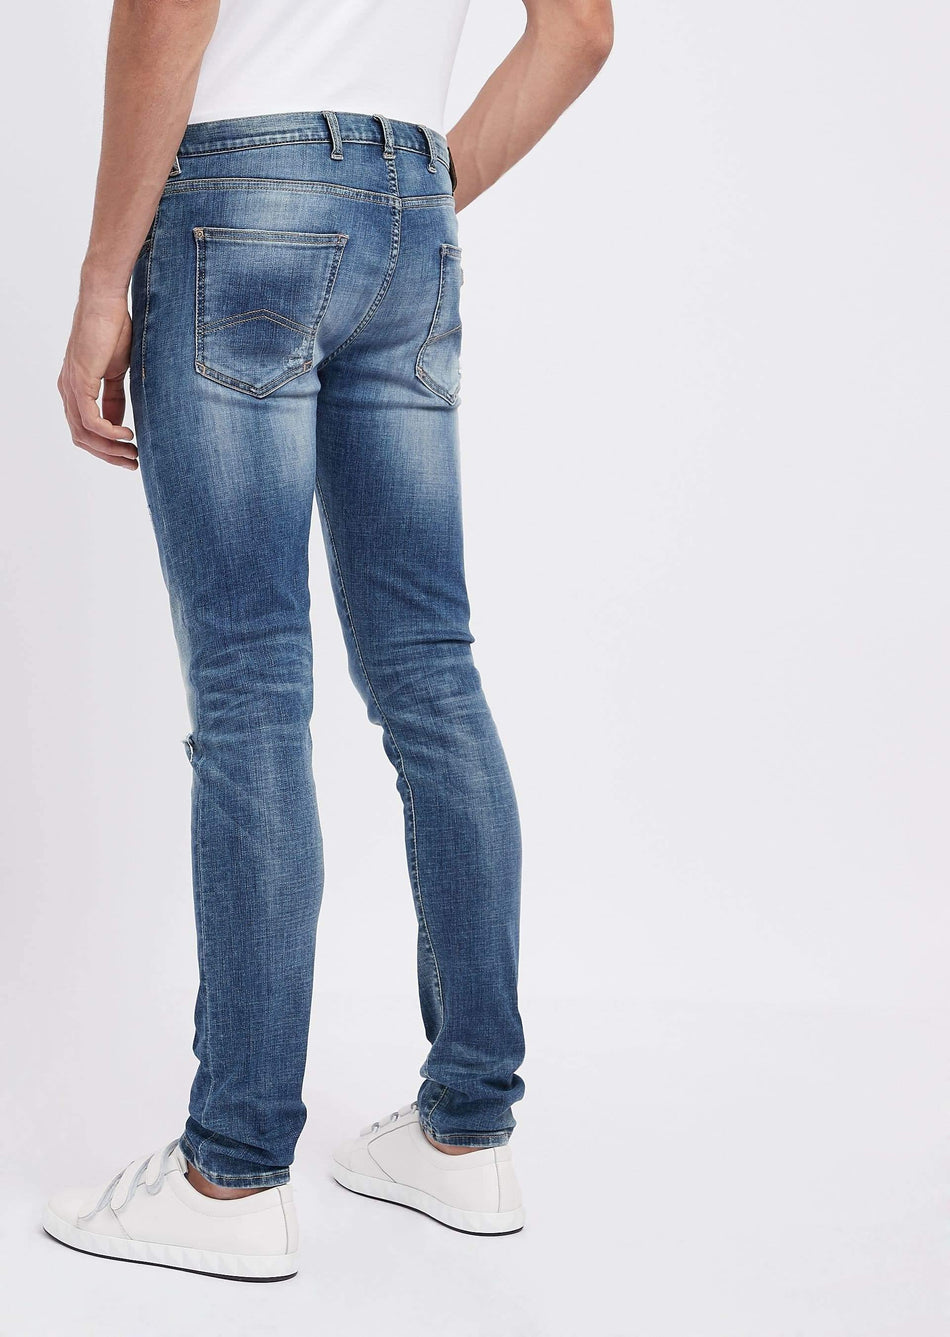 jeans j10 extra slim fit in denim di cotone twill 10 oz EMPORIO ARMANI - Vittorio Citro Boutique